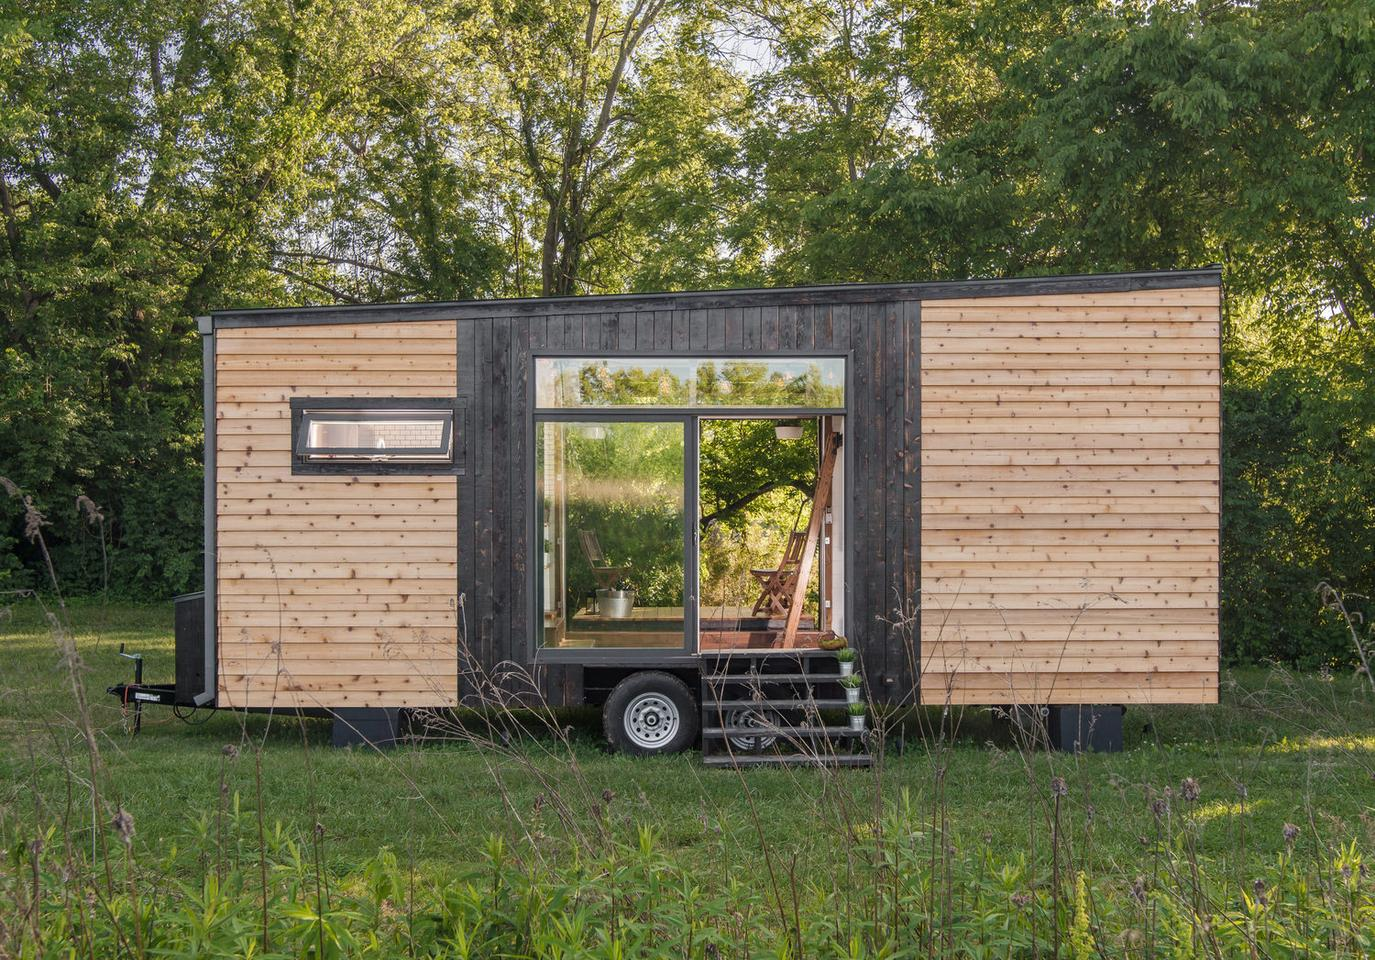 The tiny house measures 24 x 8.6 ft (7.3 x 2.6 m)